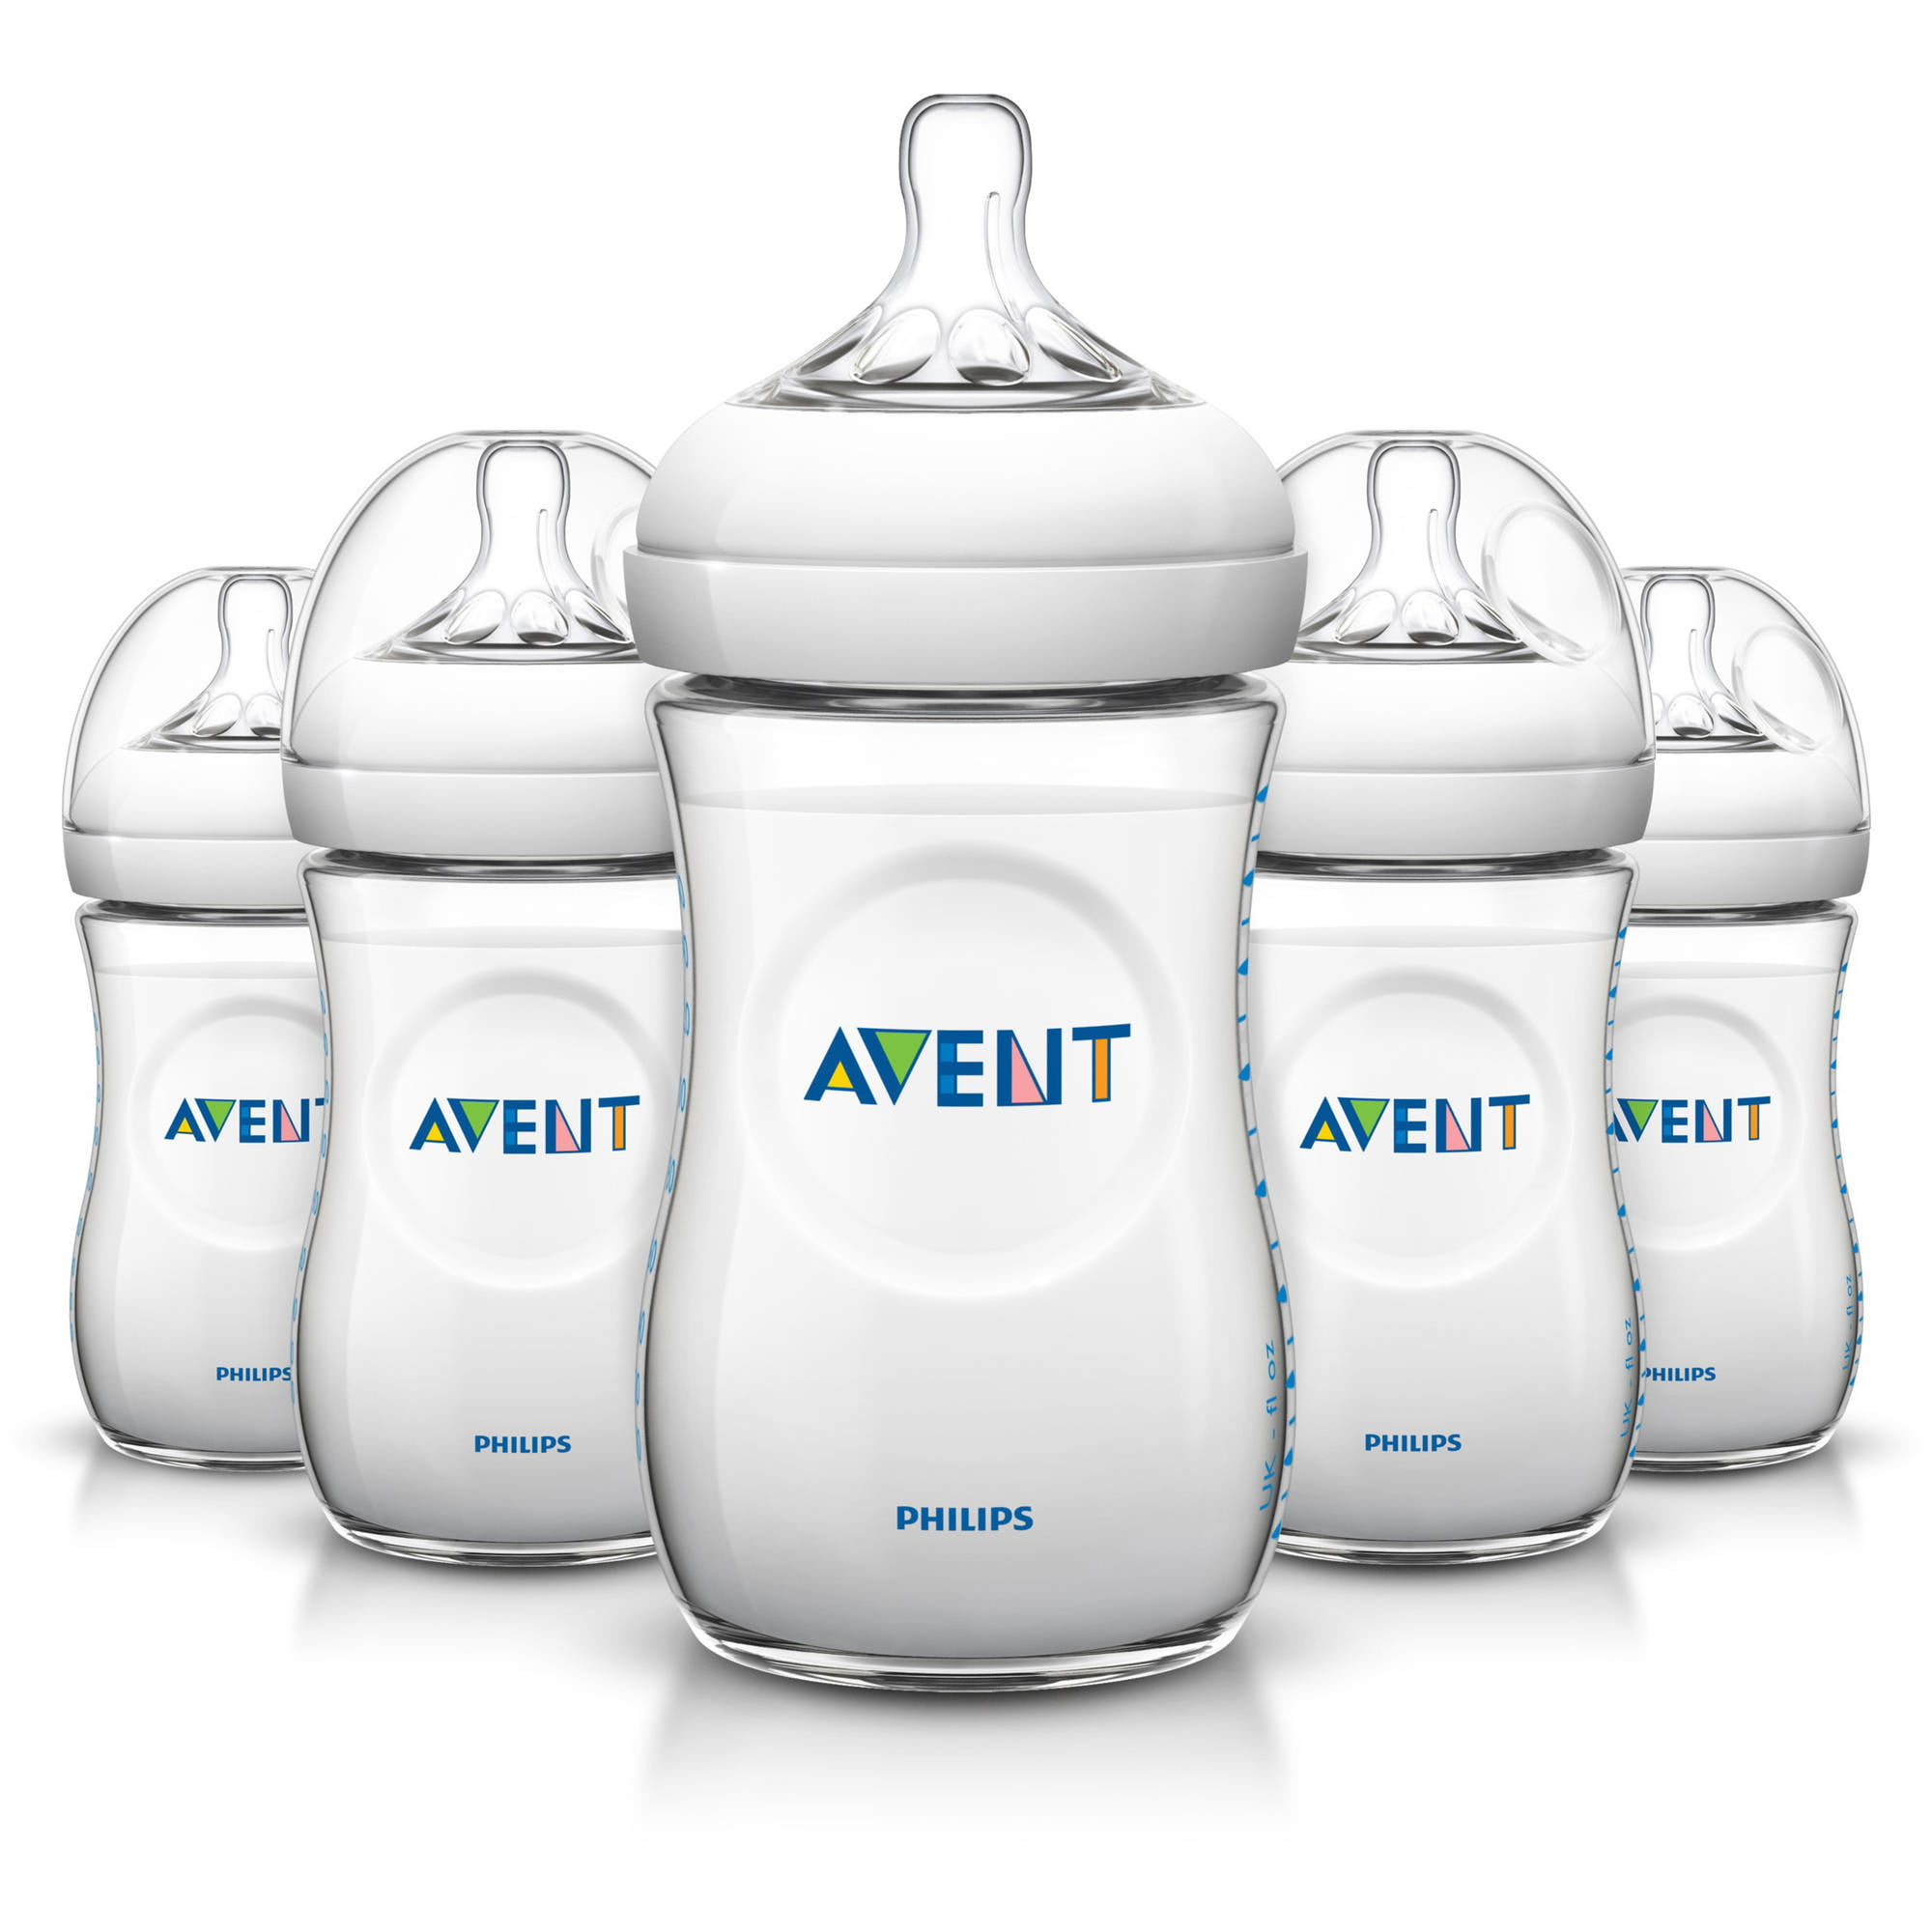 Philips Avent BPA Free Natural Baby Bottles, 9 Ounce, 5 Pack by Philips AVENT